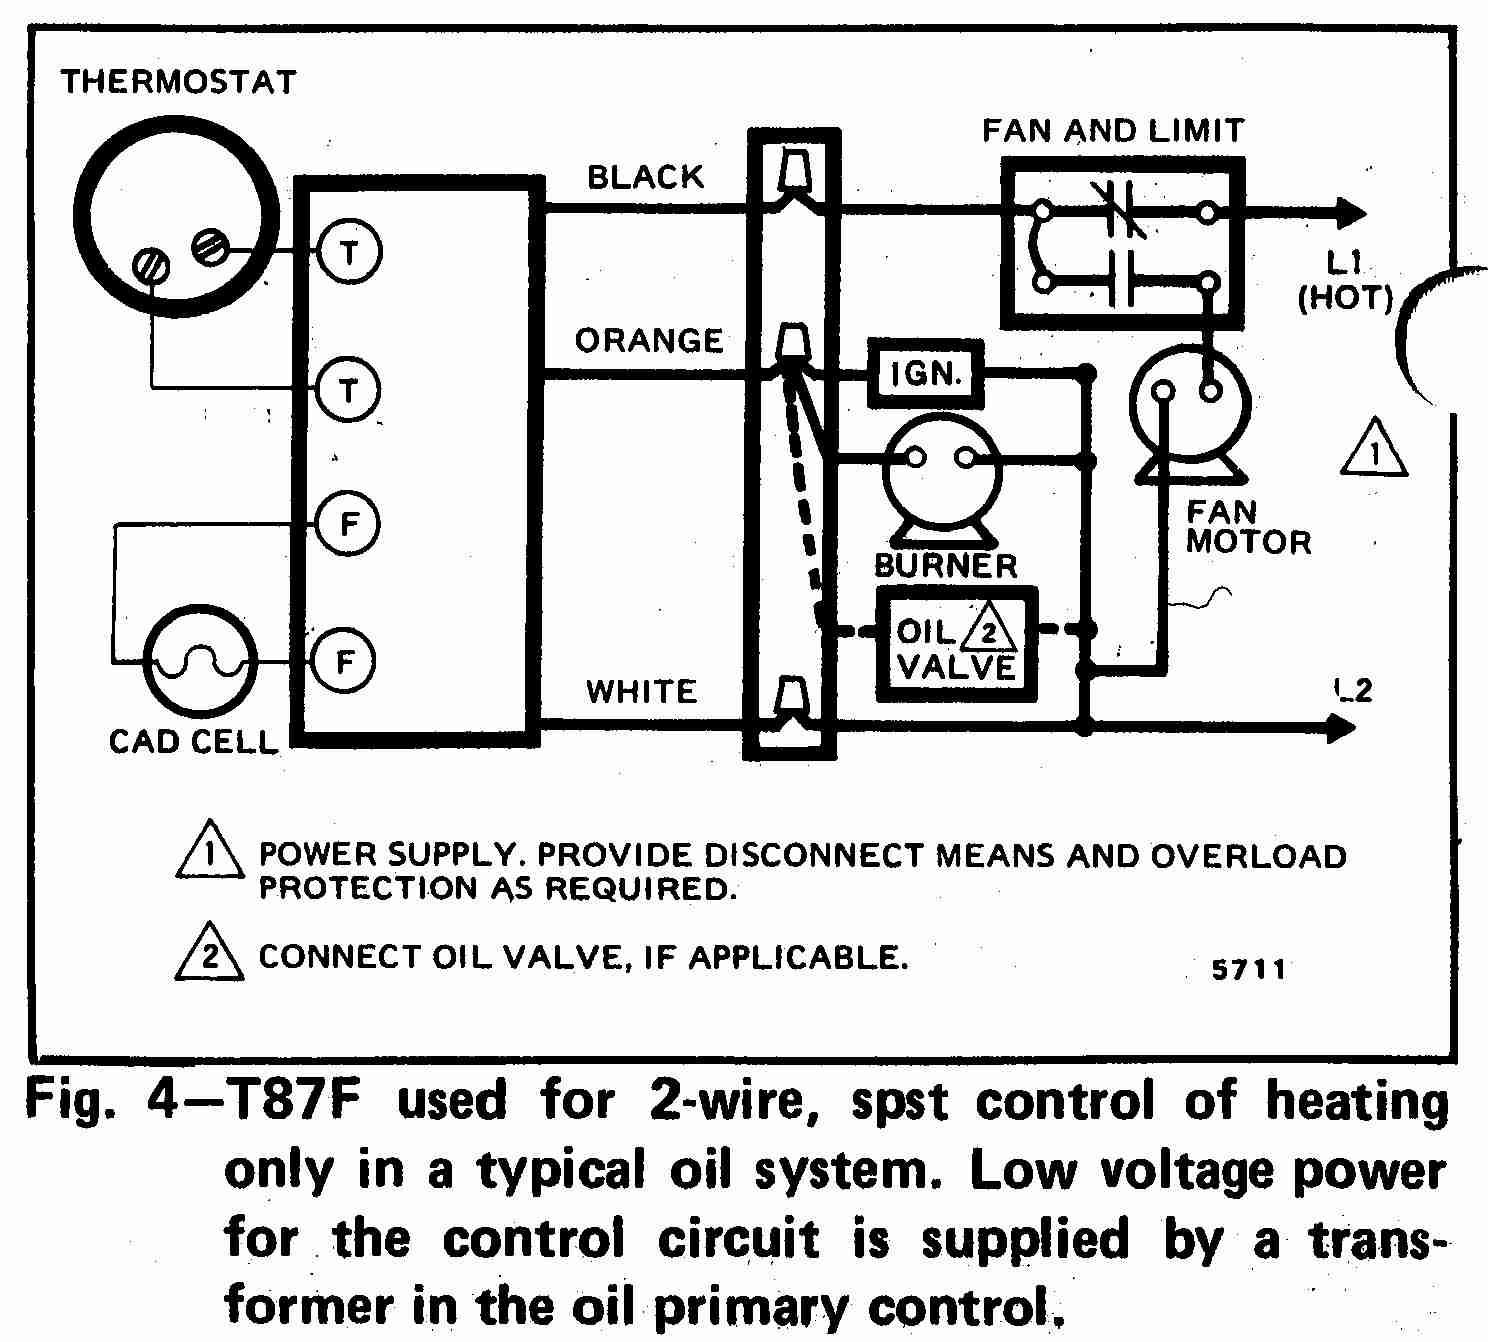 hight resolution of room thermostat wiring diagrams for hvac systems rh inspectapedia com carrier heat pump wiring diagrams heat